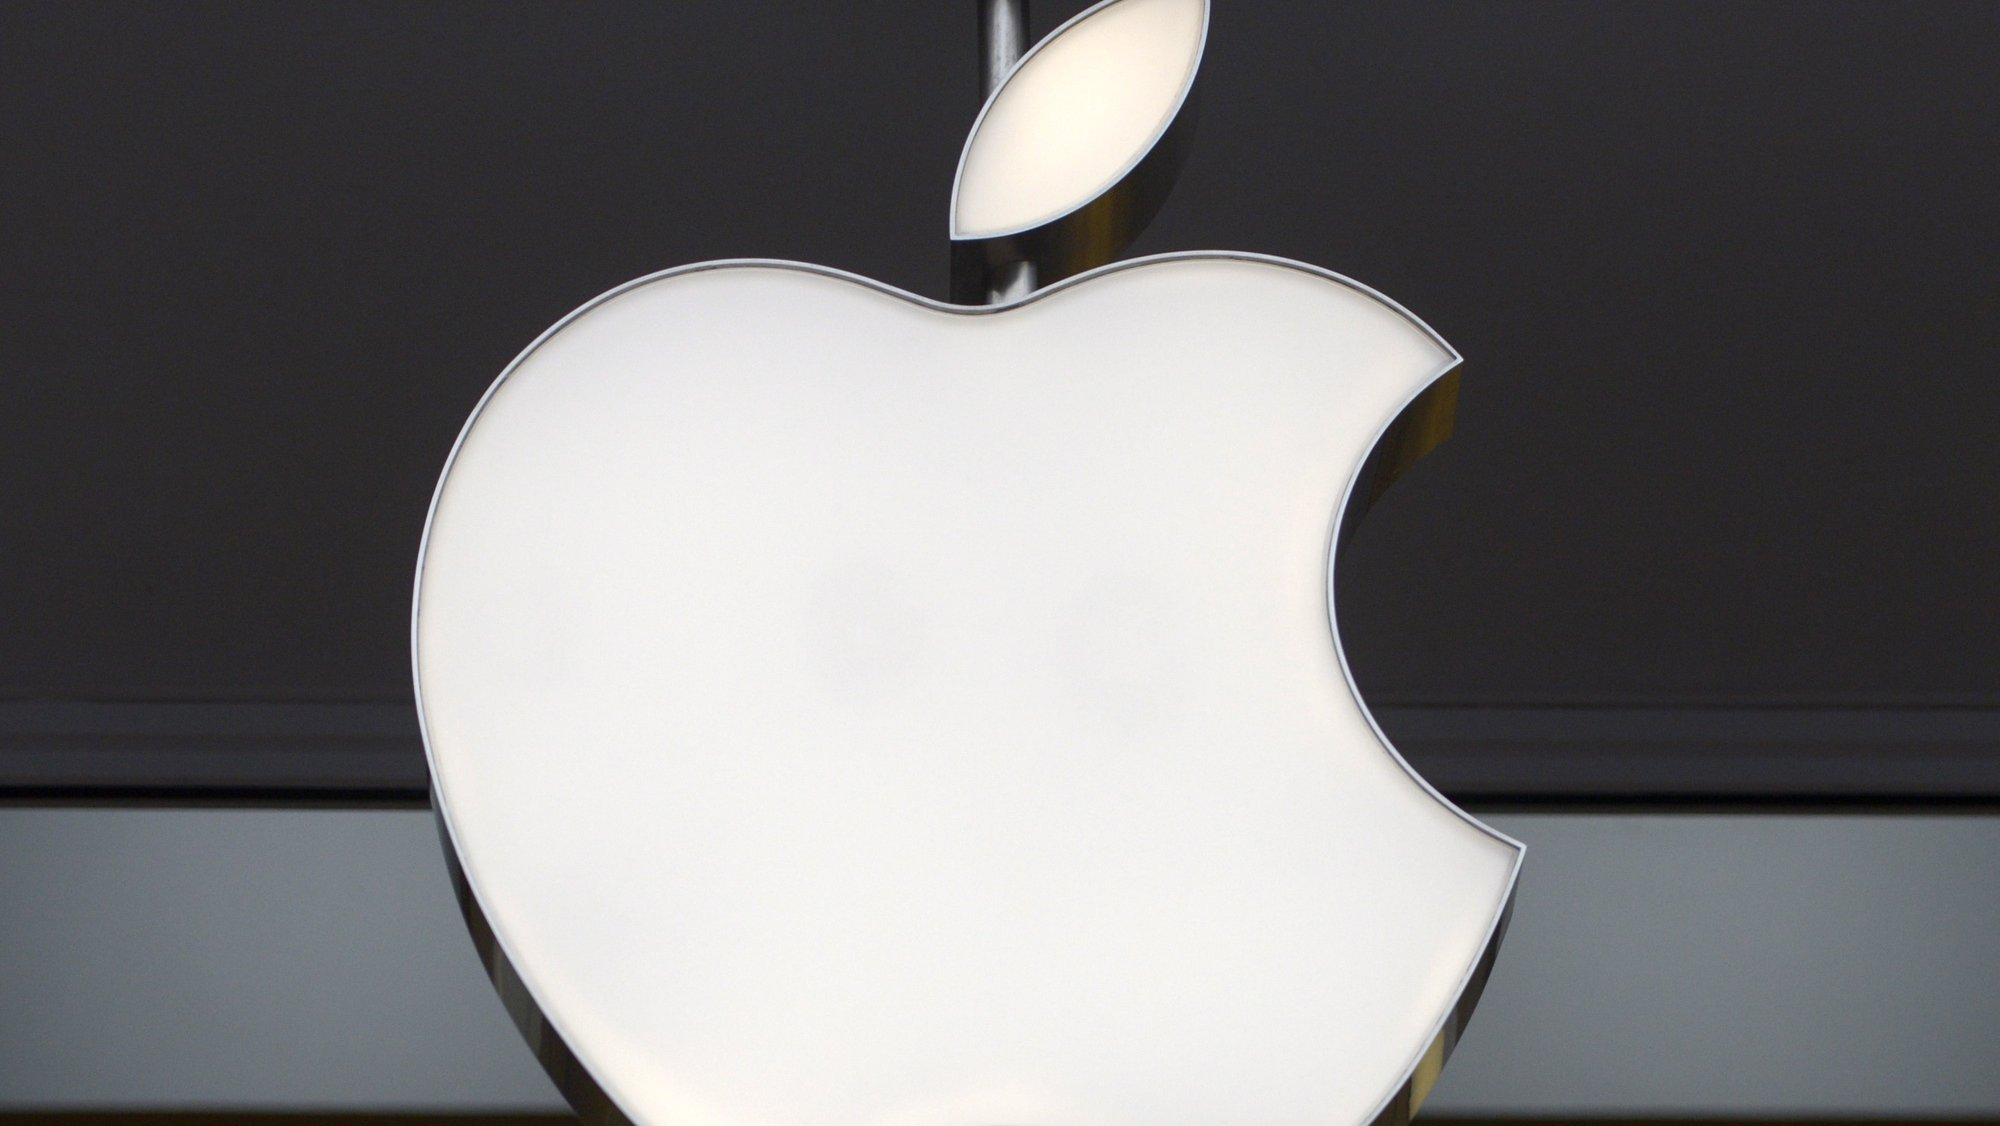 epa08547009 (FILE) - The company's logo at an Apple Store in Washington, DC, USA, 27 January 2015 (reissued 15 July 2020). The General Court of the European Union in Luxembourg announced on 15 July 2020 that it has annulled a 2016 decision taken by the Commission regarding the Irish tax rulings in favour of Apple. Europe's second-highest court said that Apple will not have to pay Ireland 13 billion euros in back taxes after winning an appeal. *** Local Caption *** 53809001  EPA/SHAWN THEW *** Local Caption *** 53809001